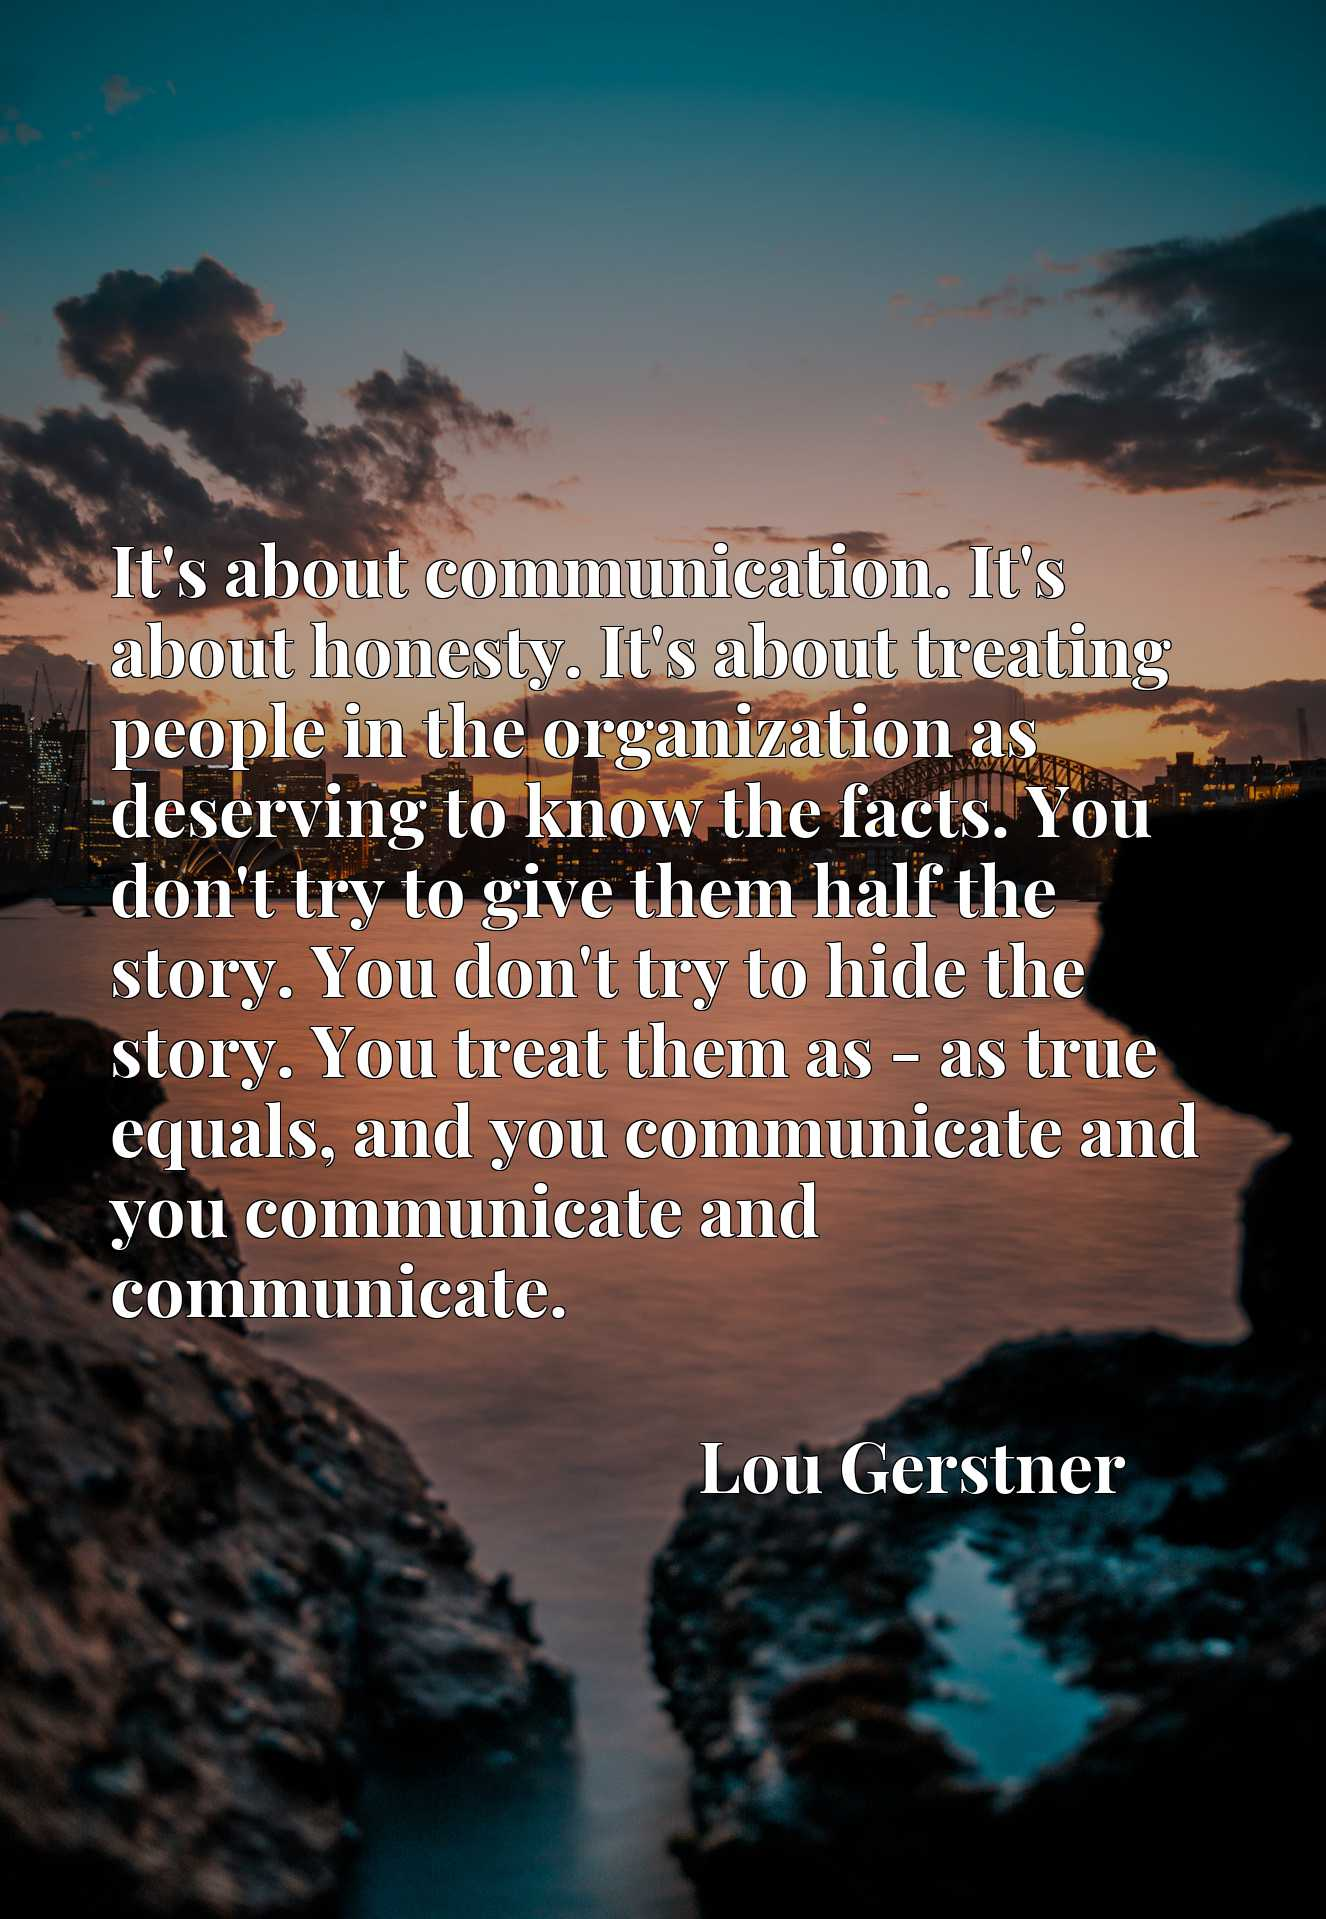 It's about communication. It's about honesty. It's about treating people in the organization as deserving to know the facts. You don't try to give them half the story. You don't try to hide the story. You treat them as - as true equals, and you communicate and you communicate and communicate.